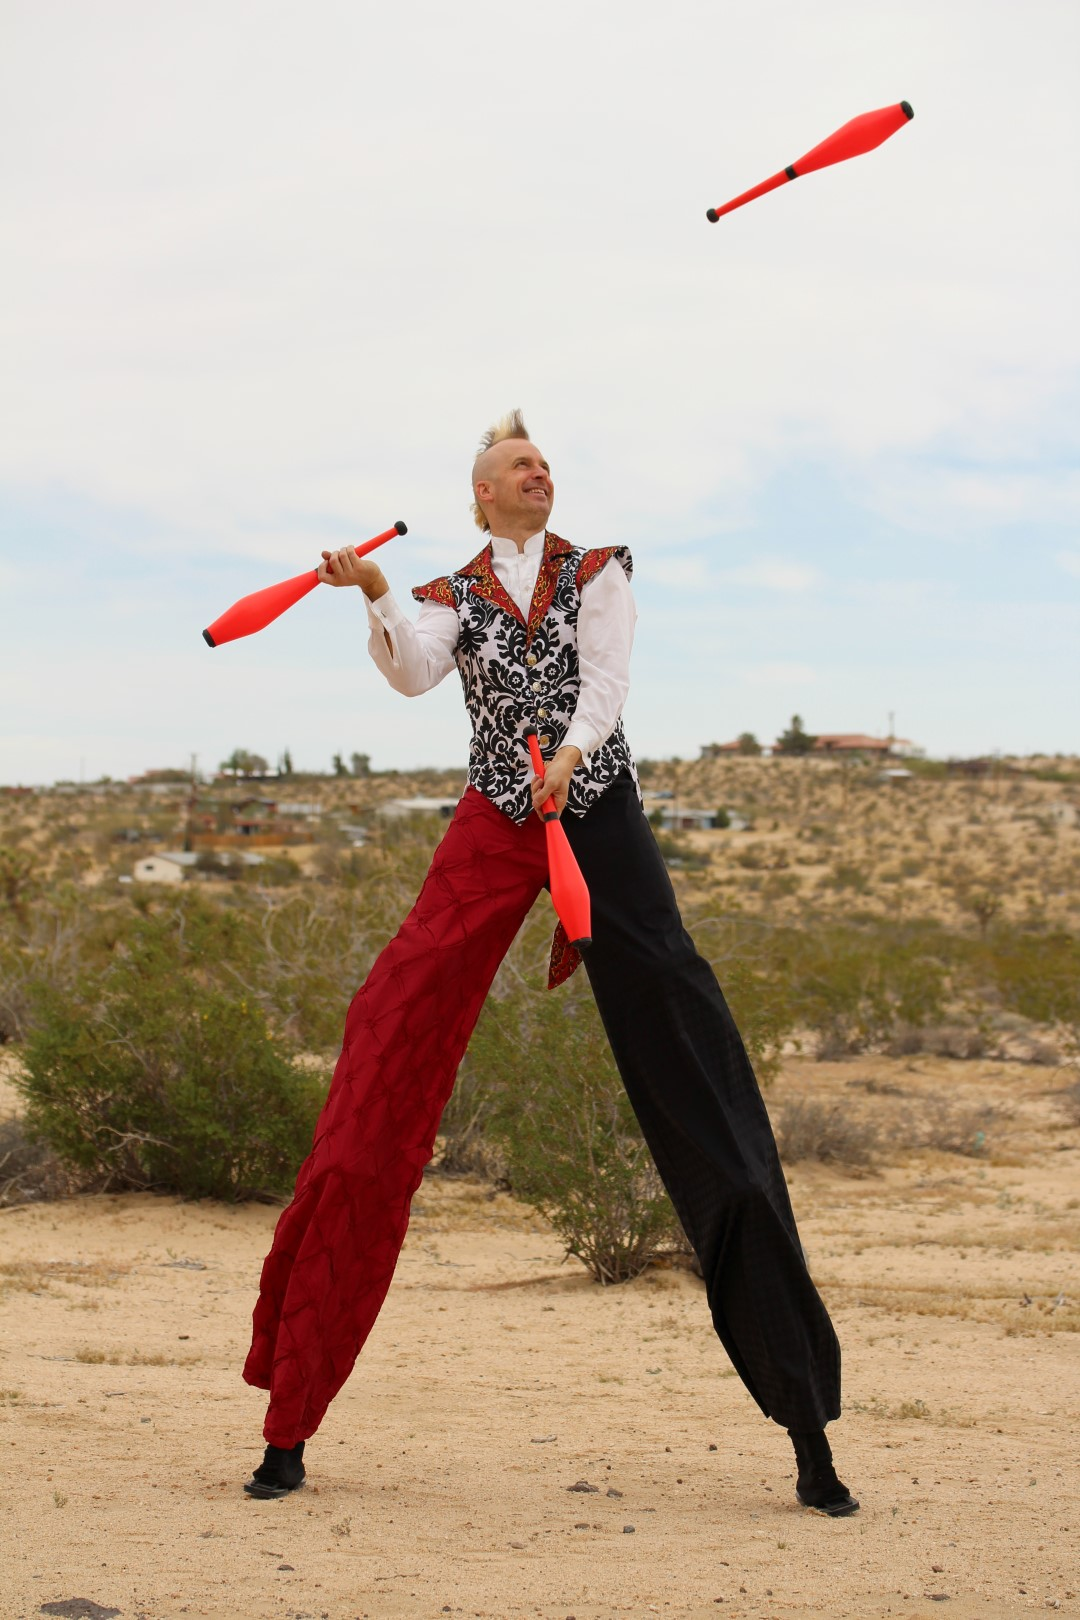 Rob Crites - Stilts and Juggling